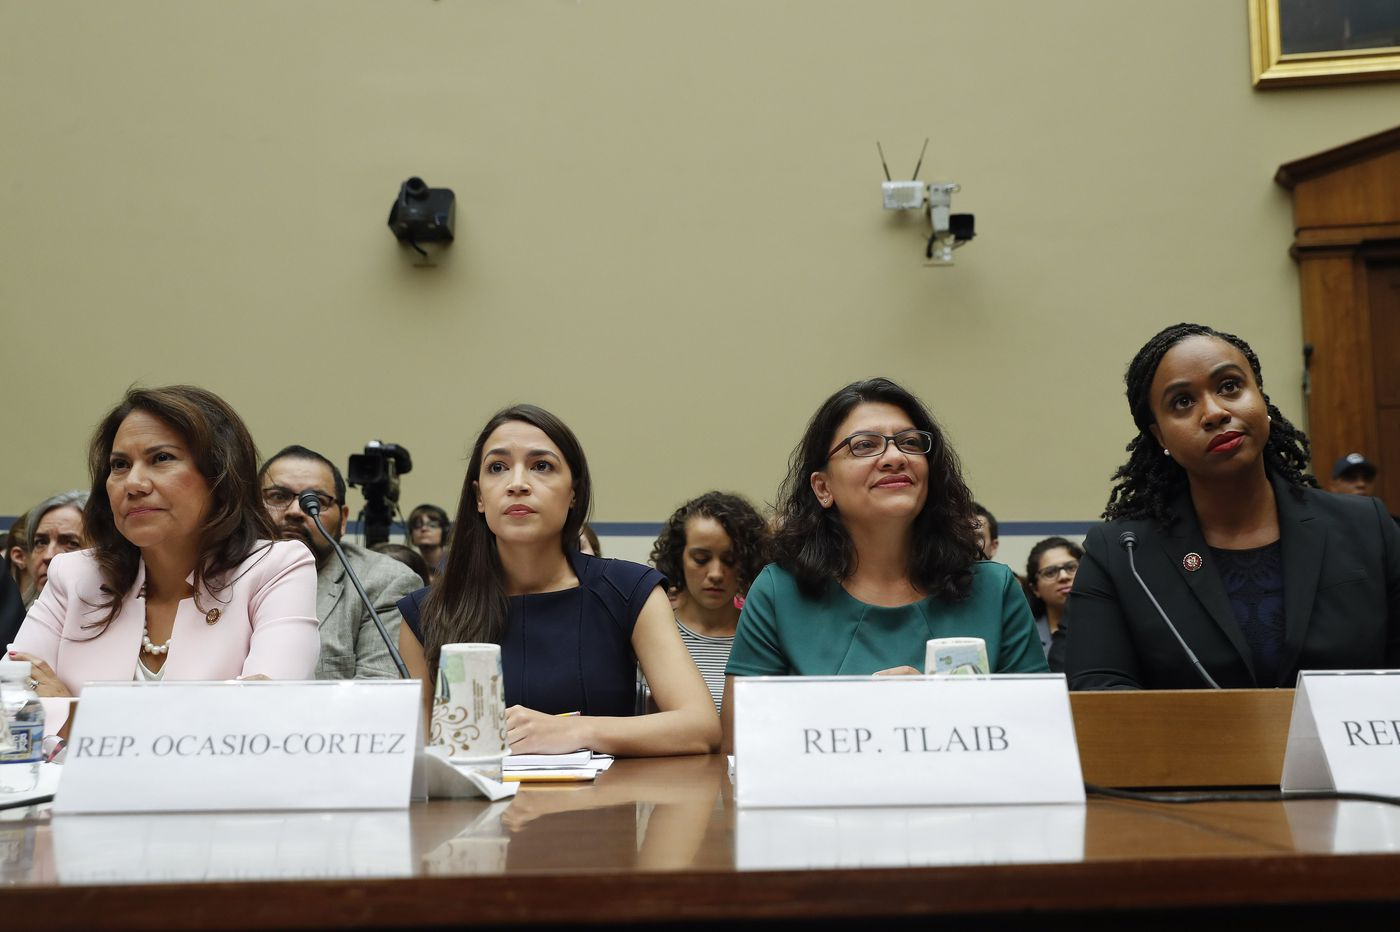 Trump calls on minority congresswomen to apologize and says they should 'go back' to their countries